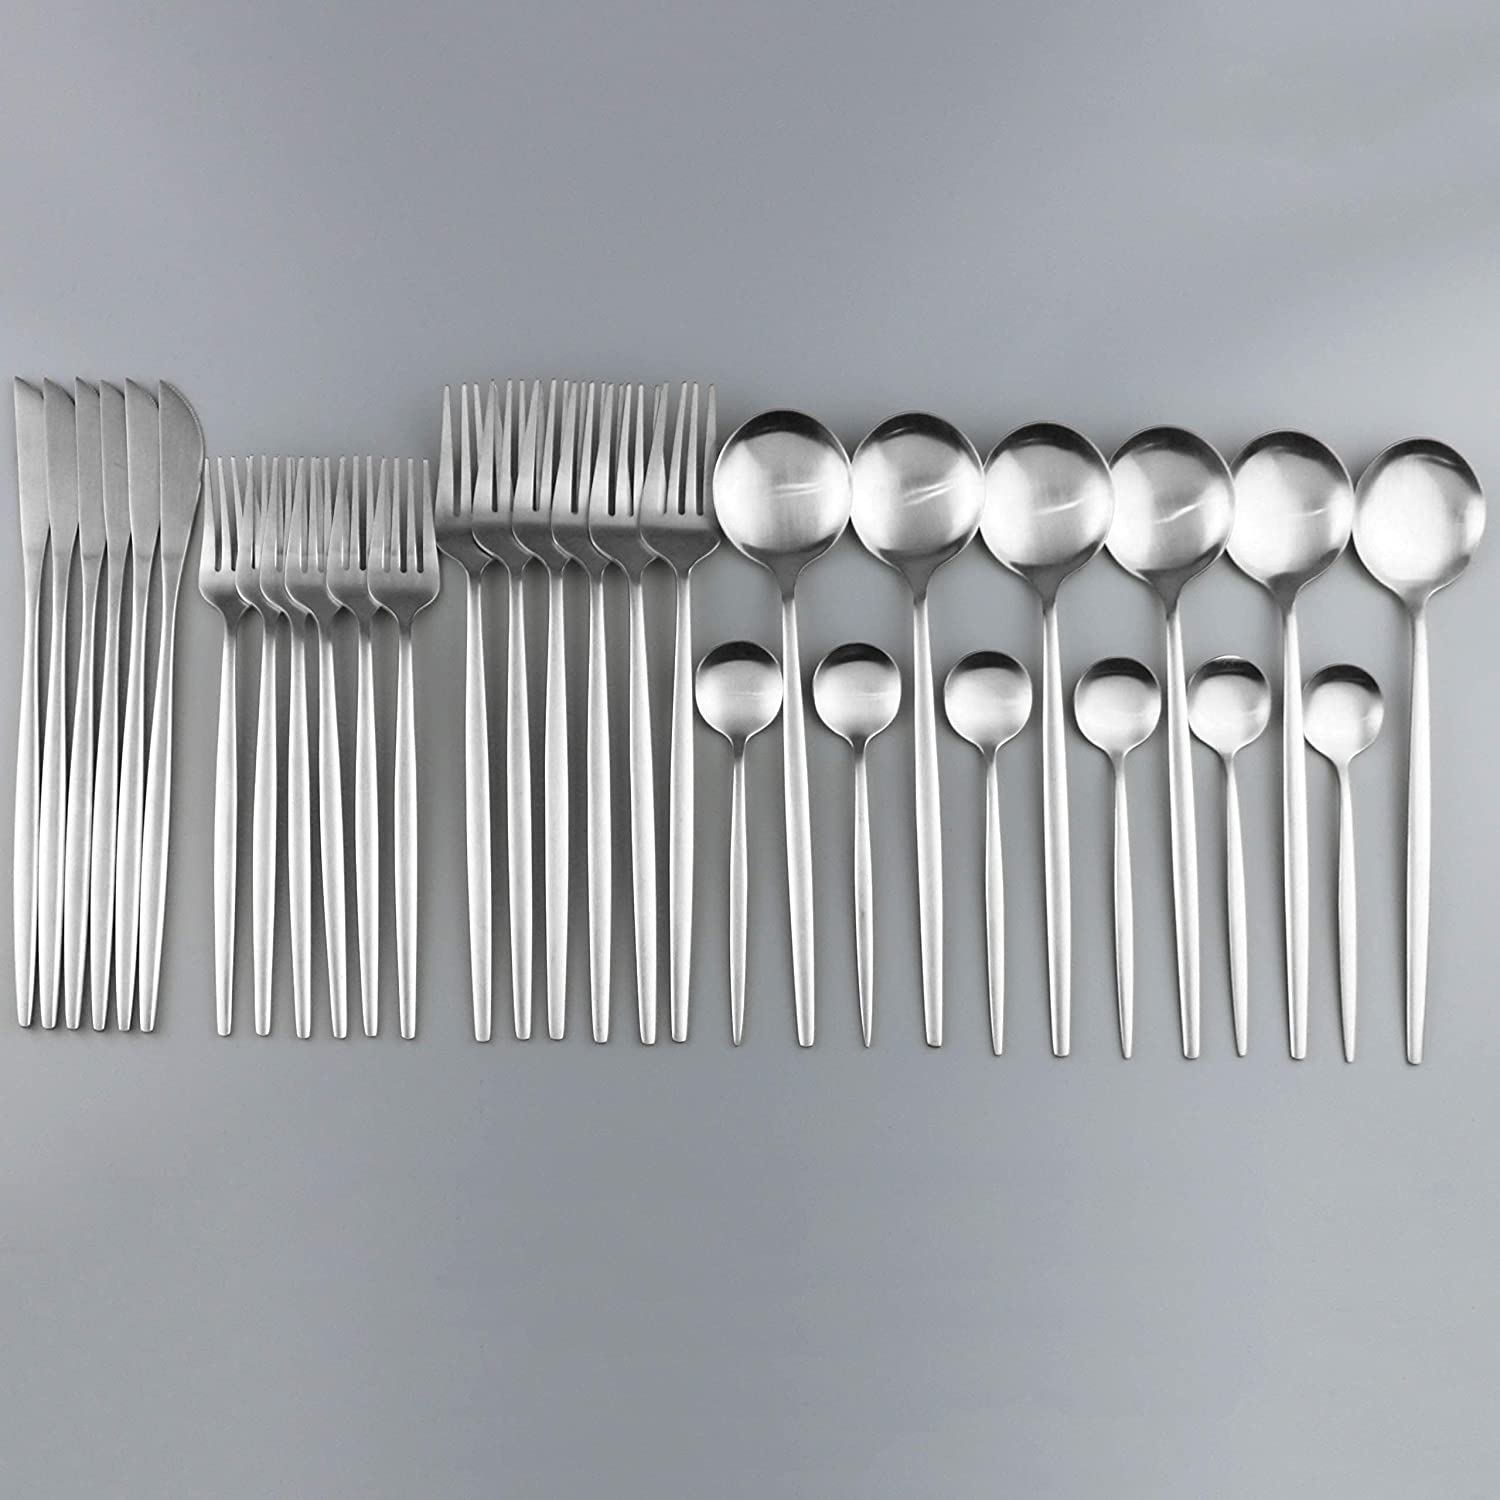 Sales for sale Silverware Set White sold out Silver Dinnerware 304 Stainless C Steel